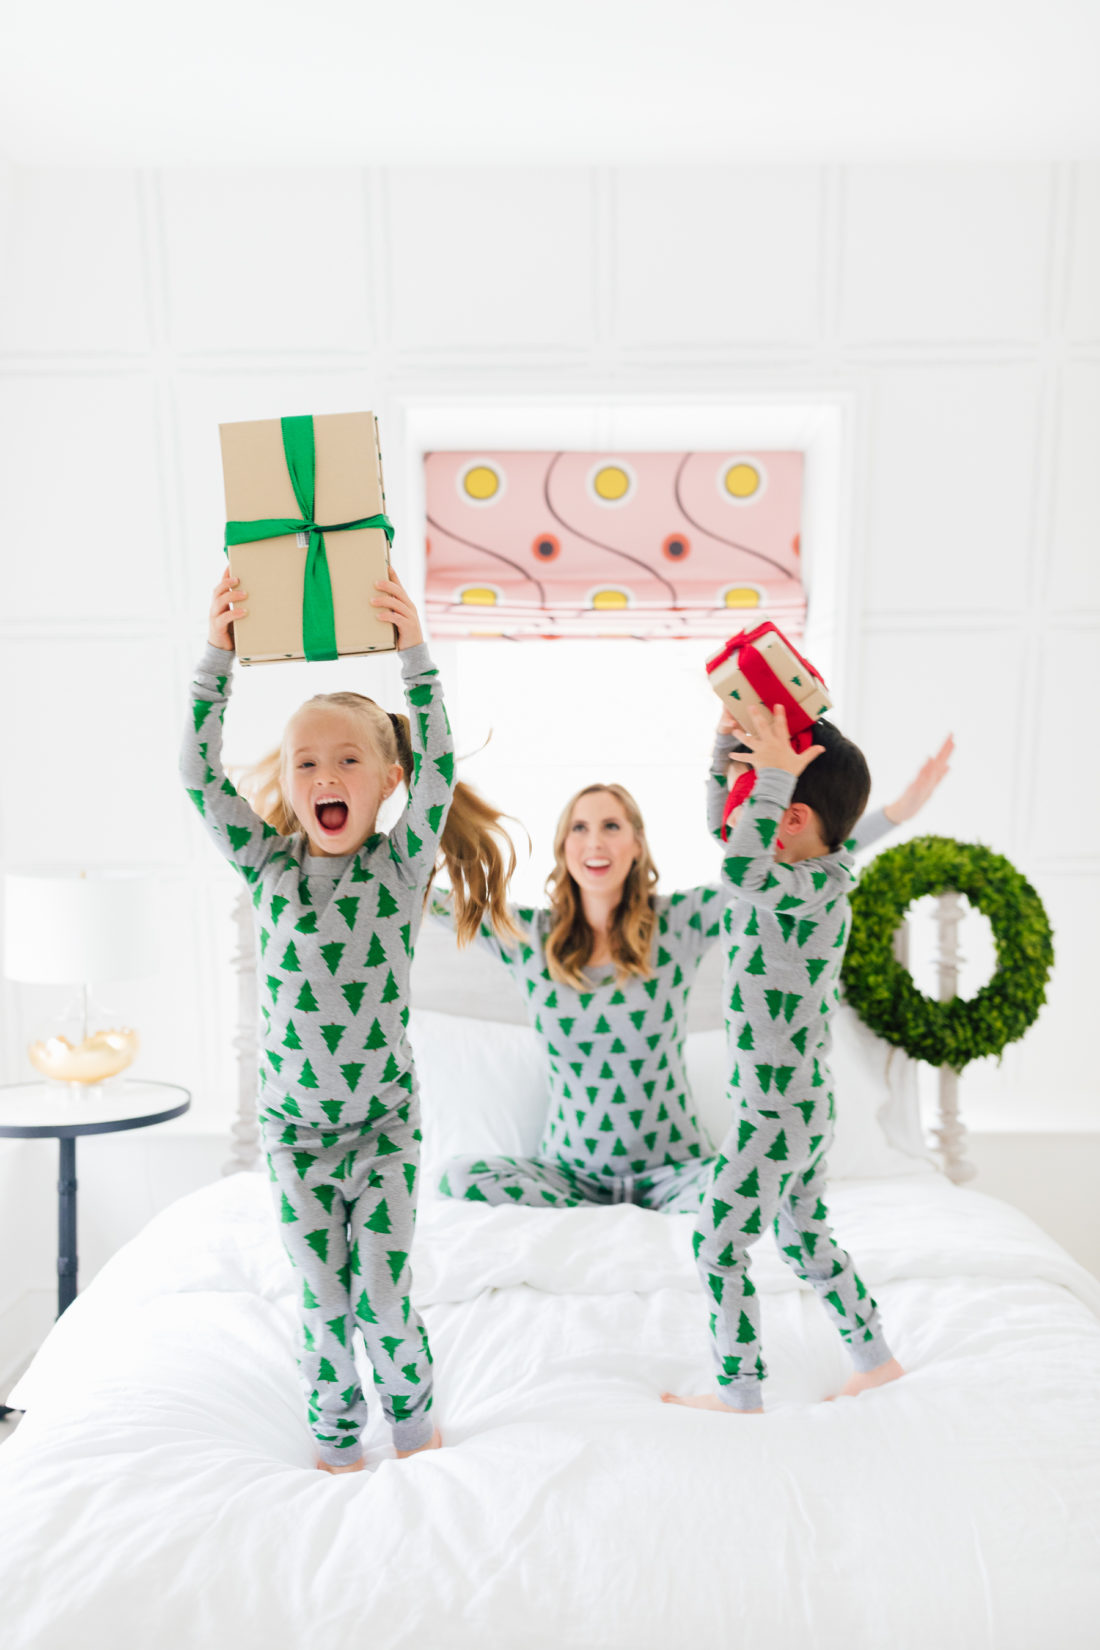 Eva Amurri Martino and her kids Marlowe and Major wear matching holiday pajamas and hold wrapped gifts in bed